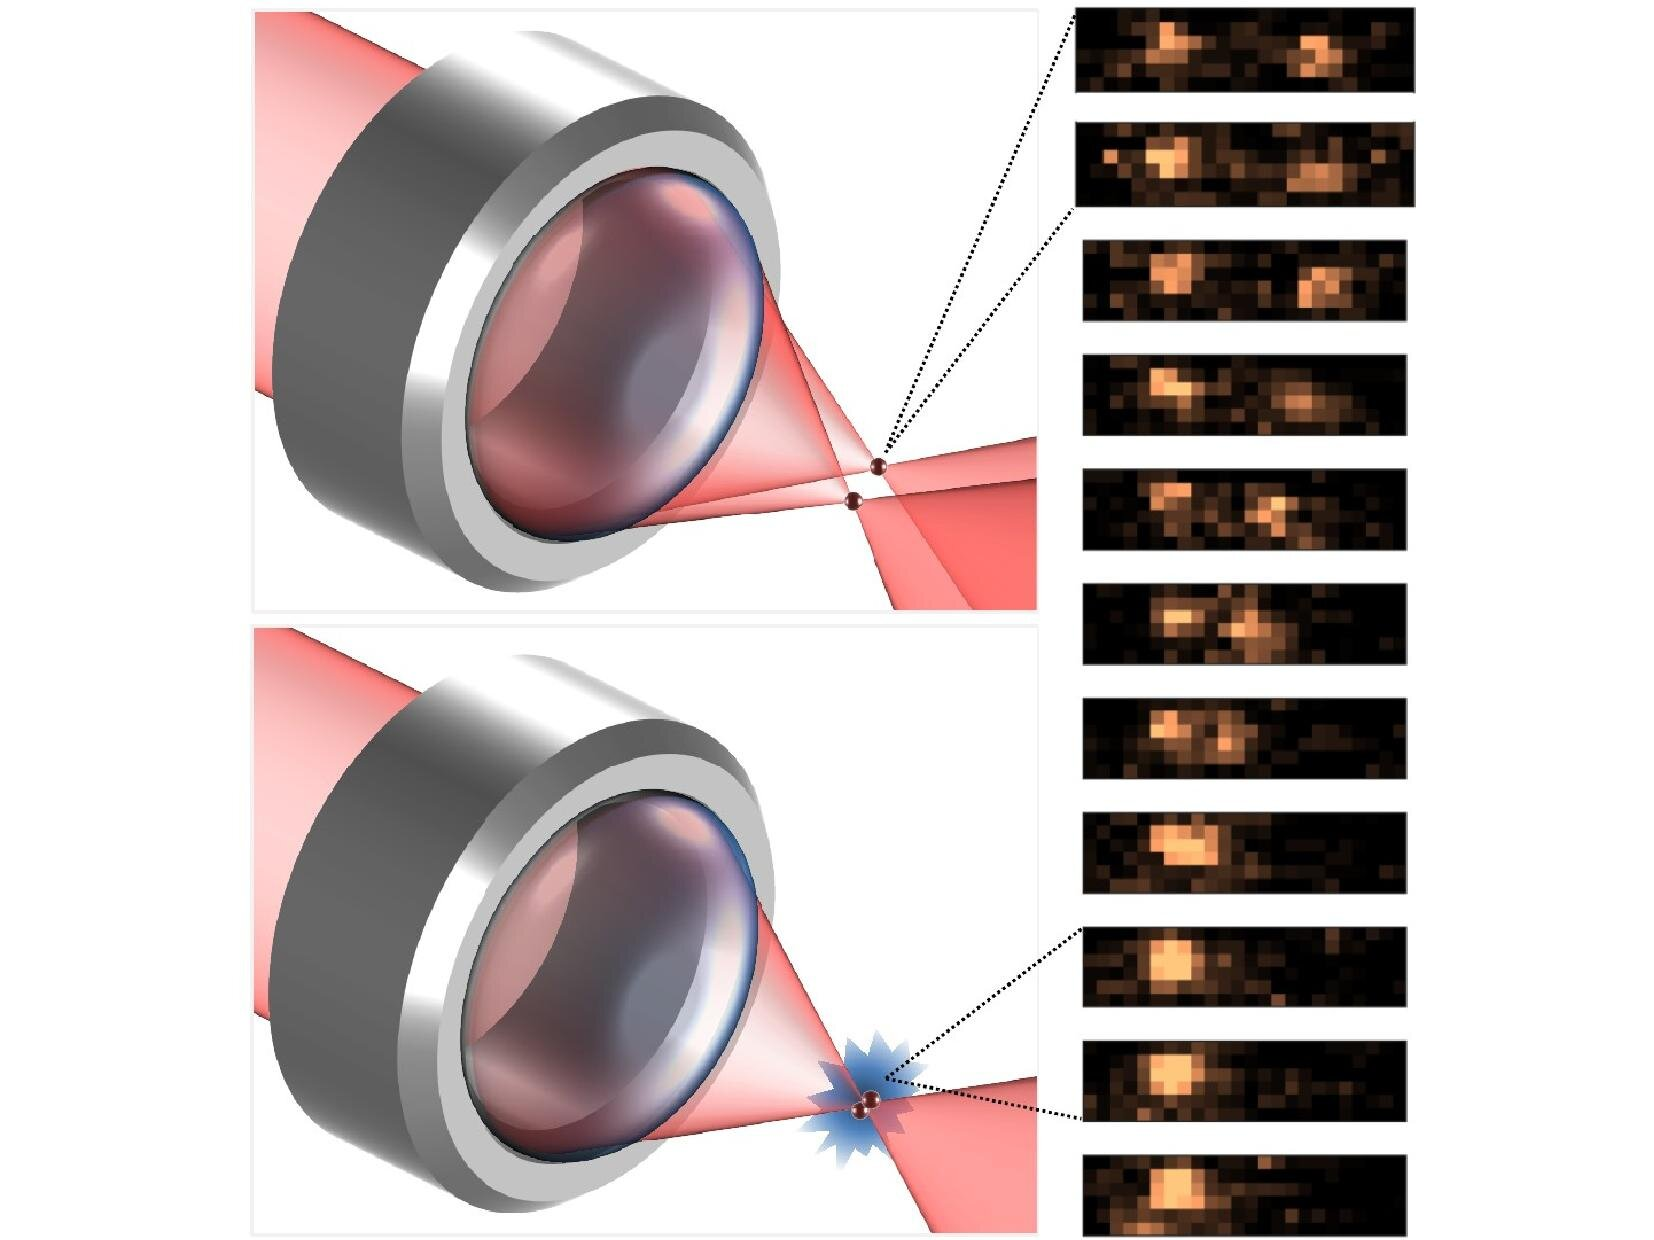 Atom interaction discovery valuable for future quantum technologies - Phys.org